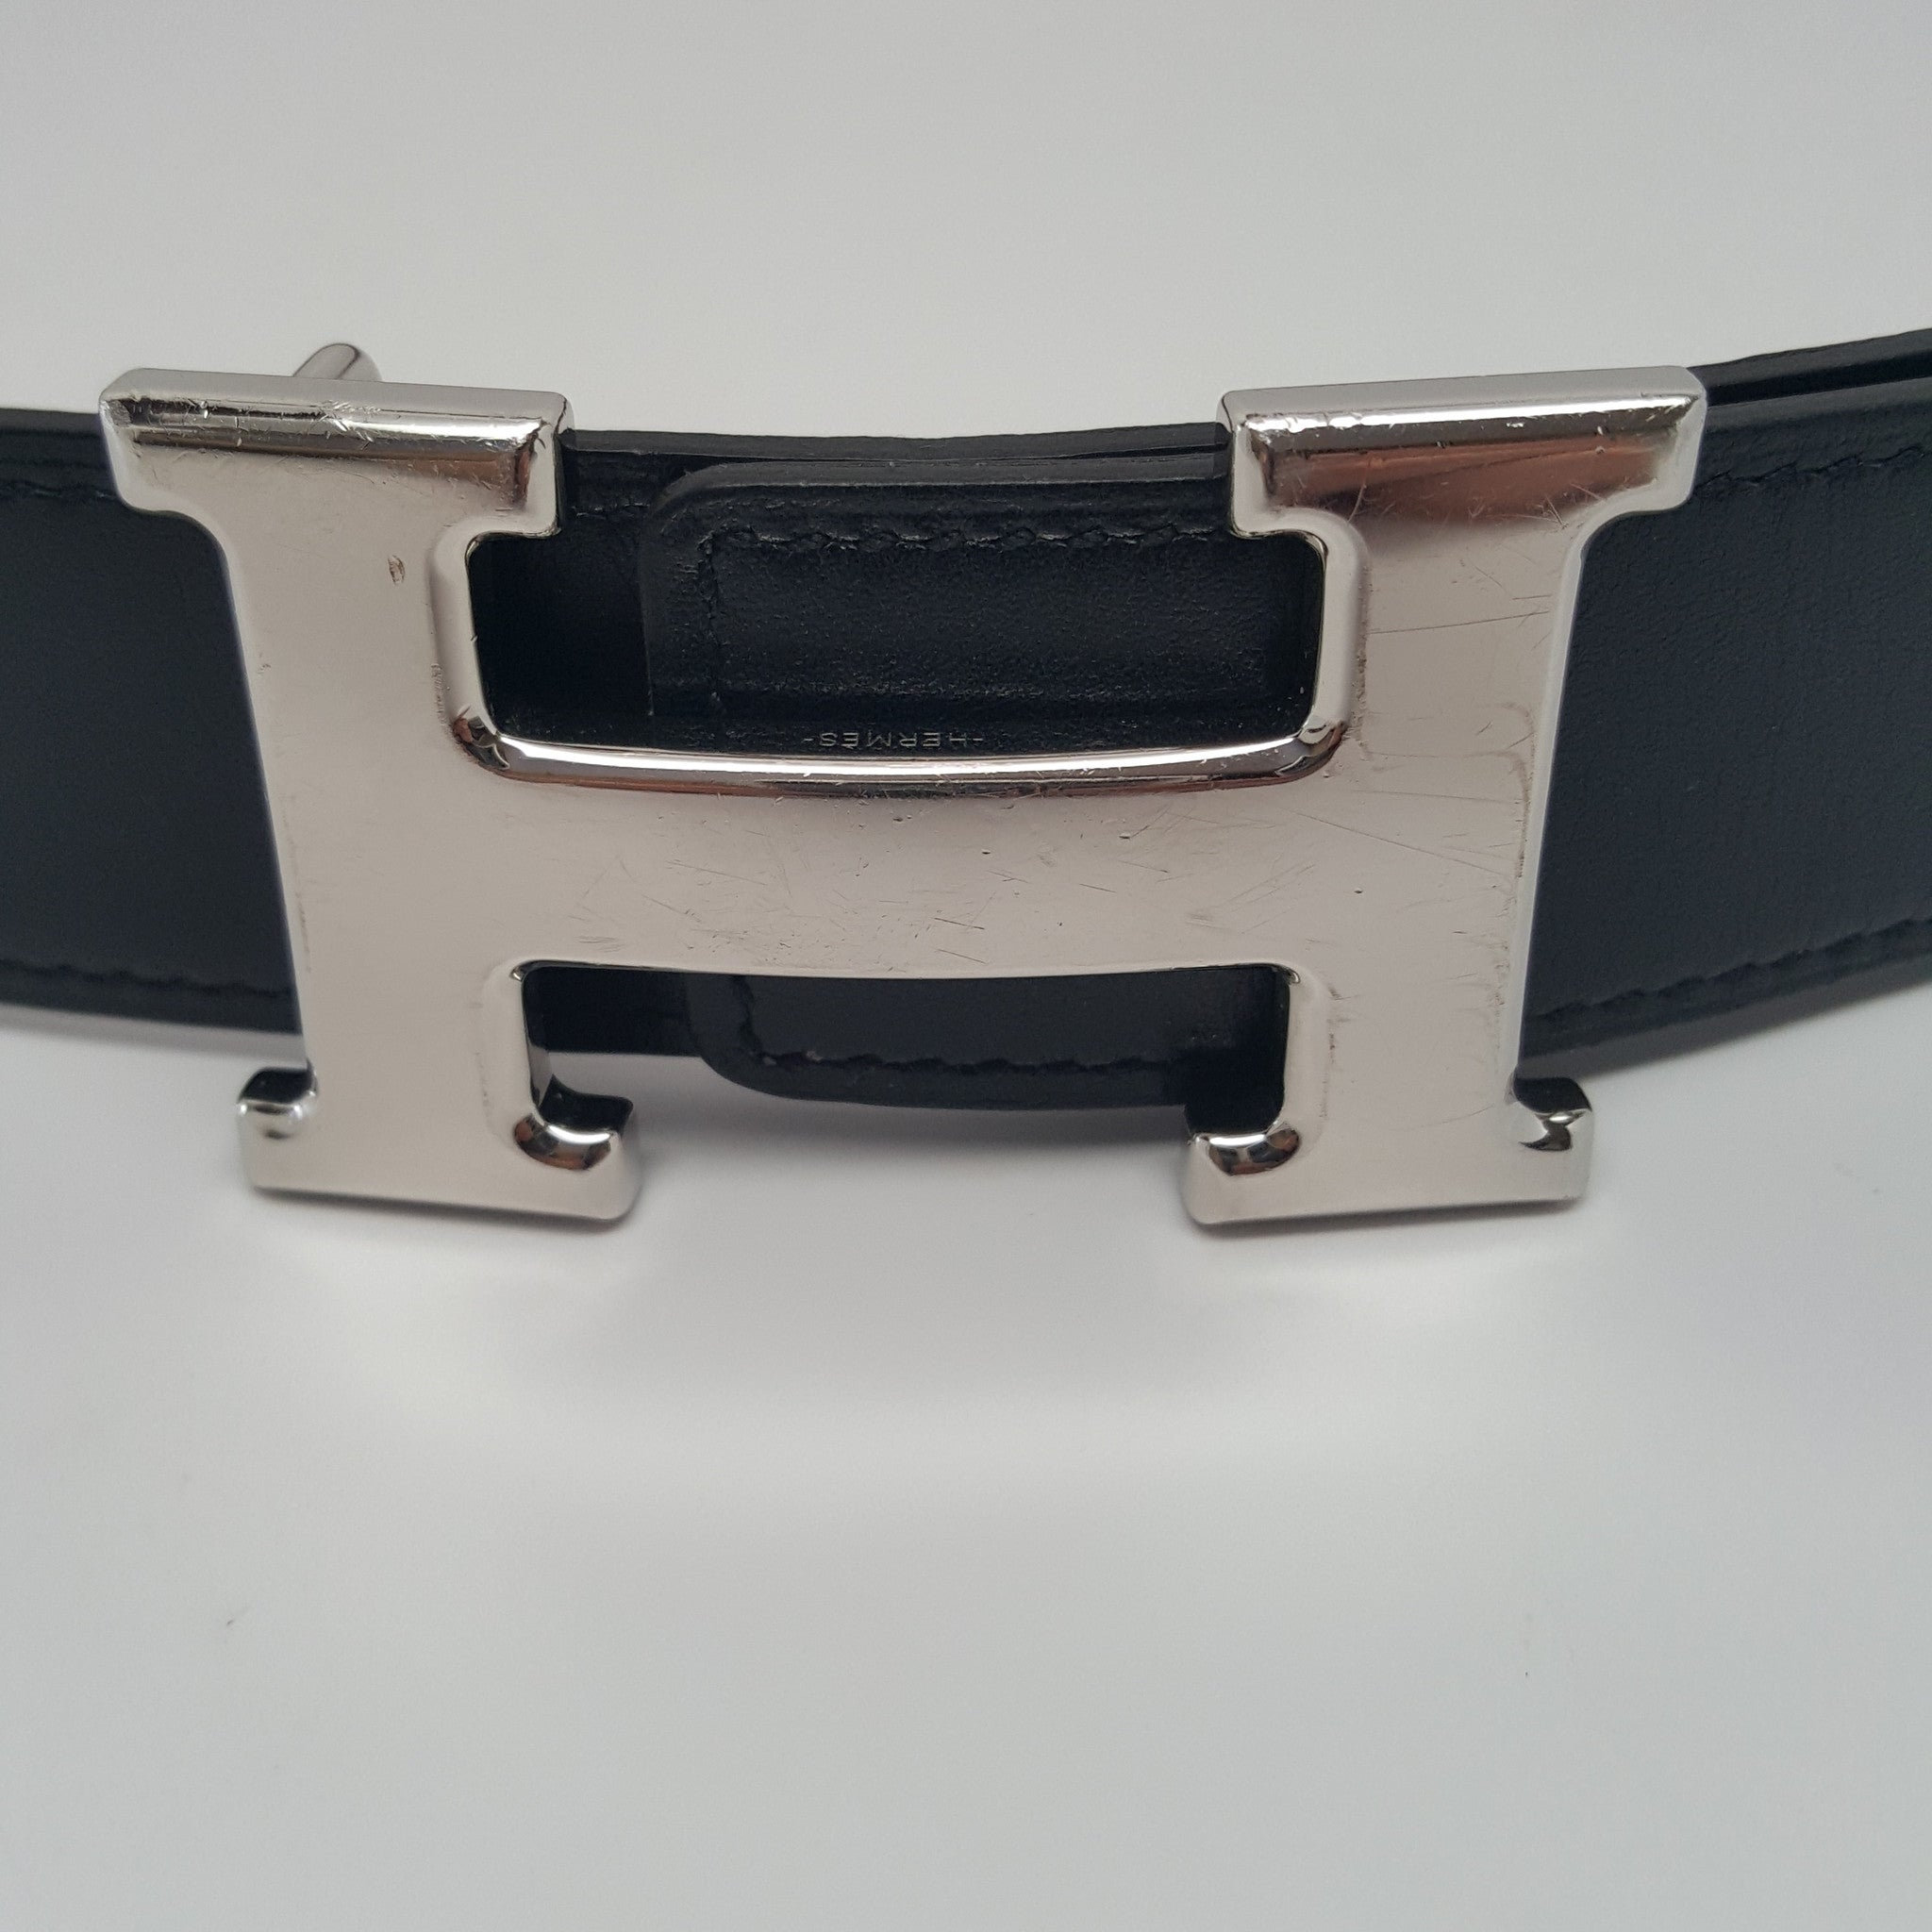 HERMES CONSTANCE PALLADIUM H BUCKLE REVERSIBLE BLACK LEATHER BELT